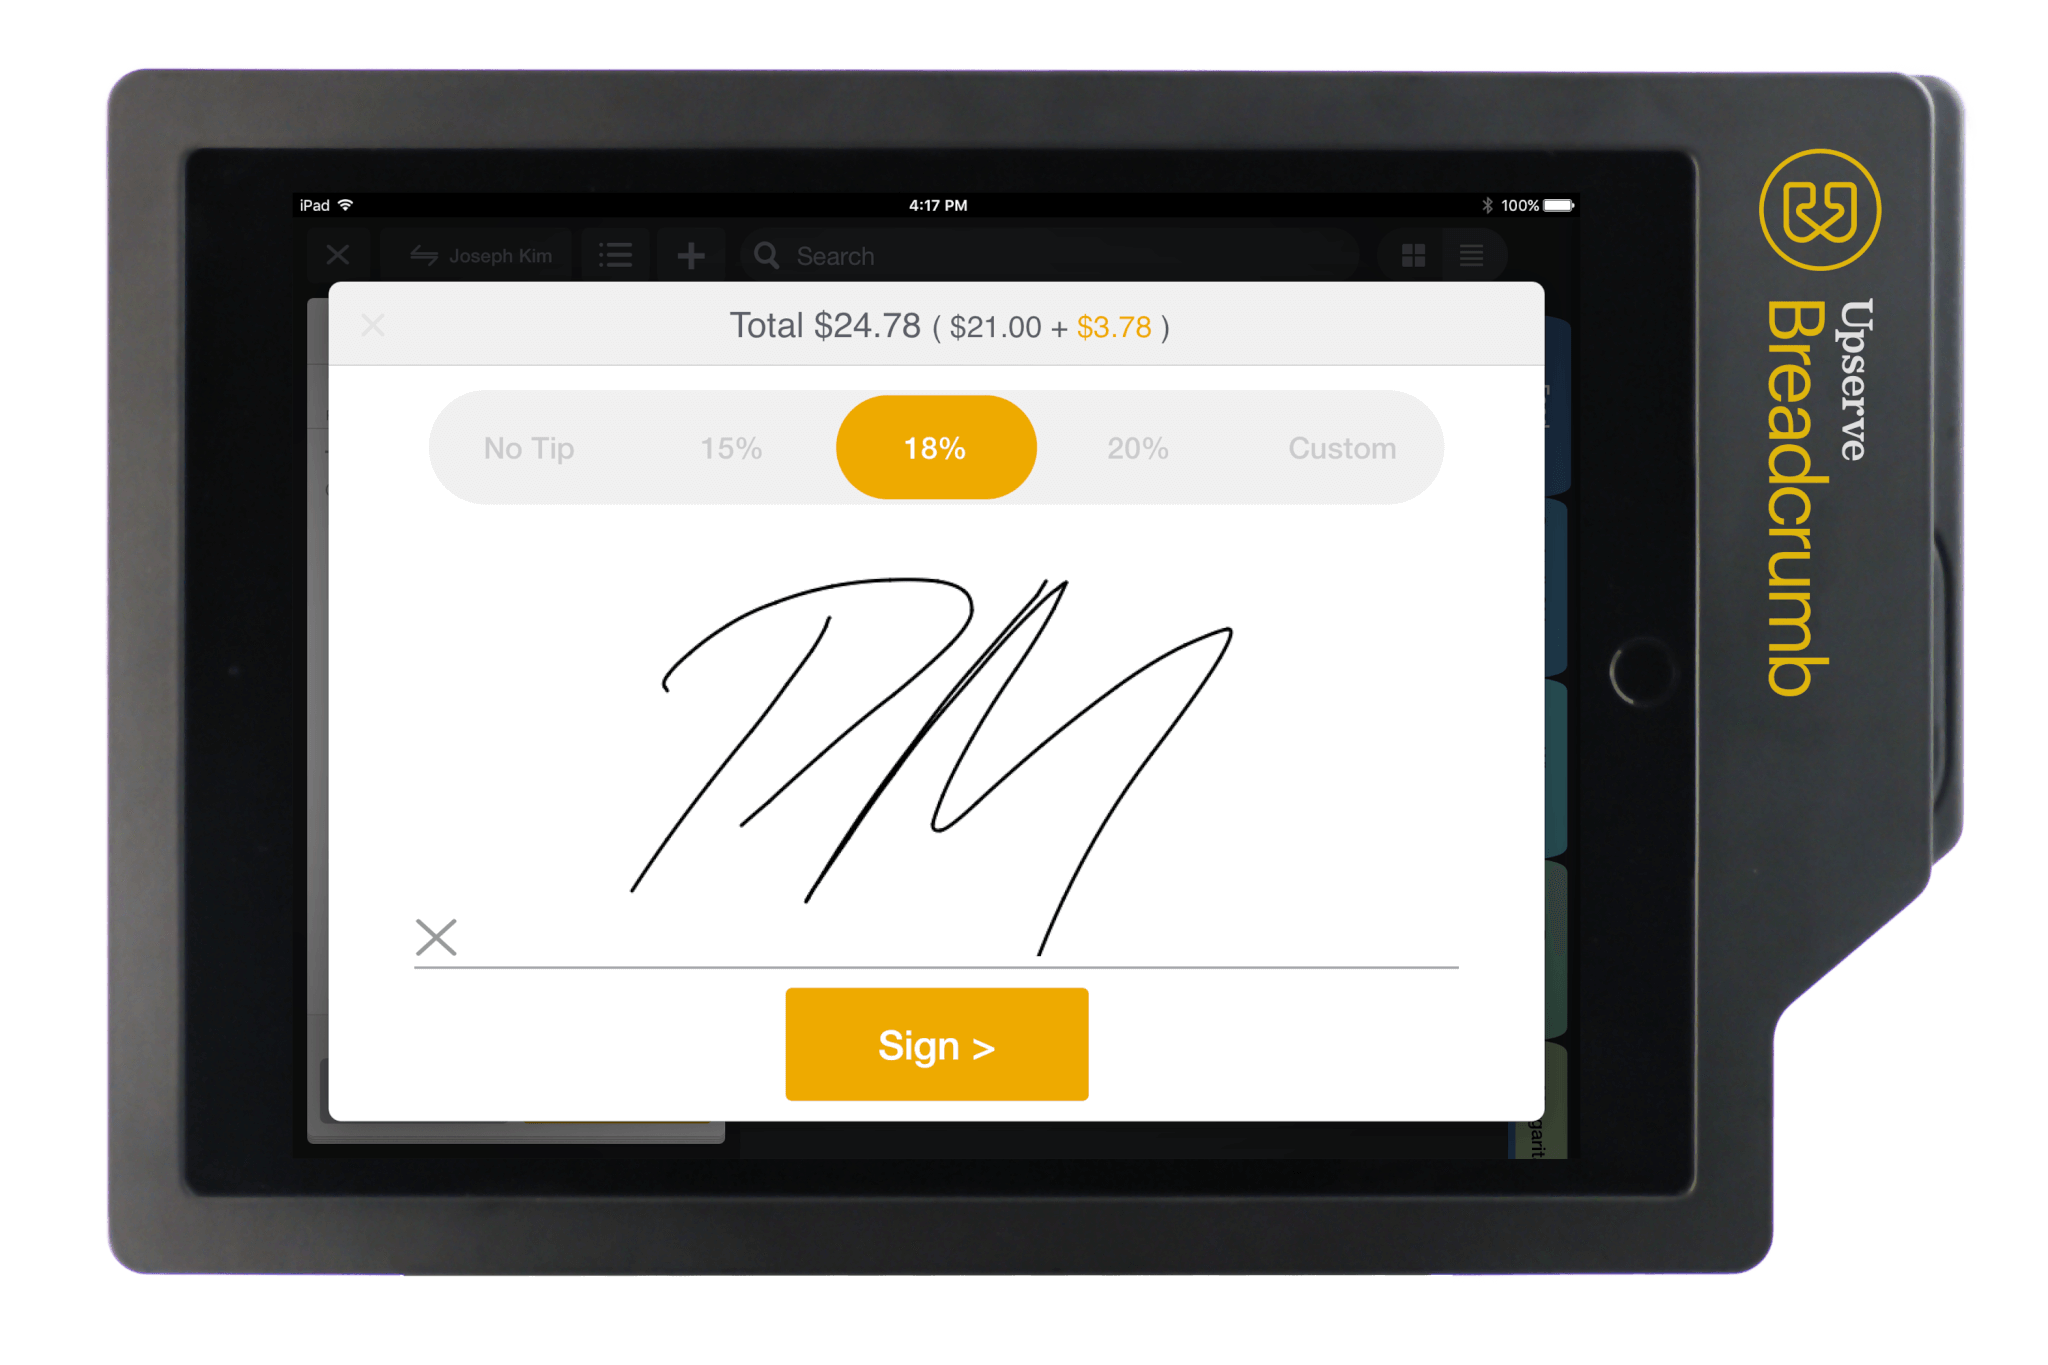 Enable quick checkouts by allowing customers to sign right on the ipad